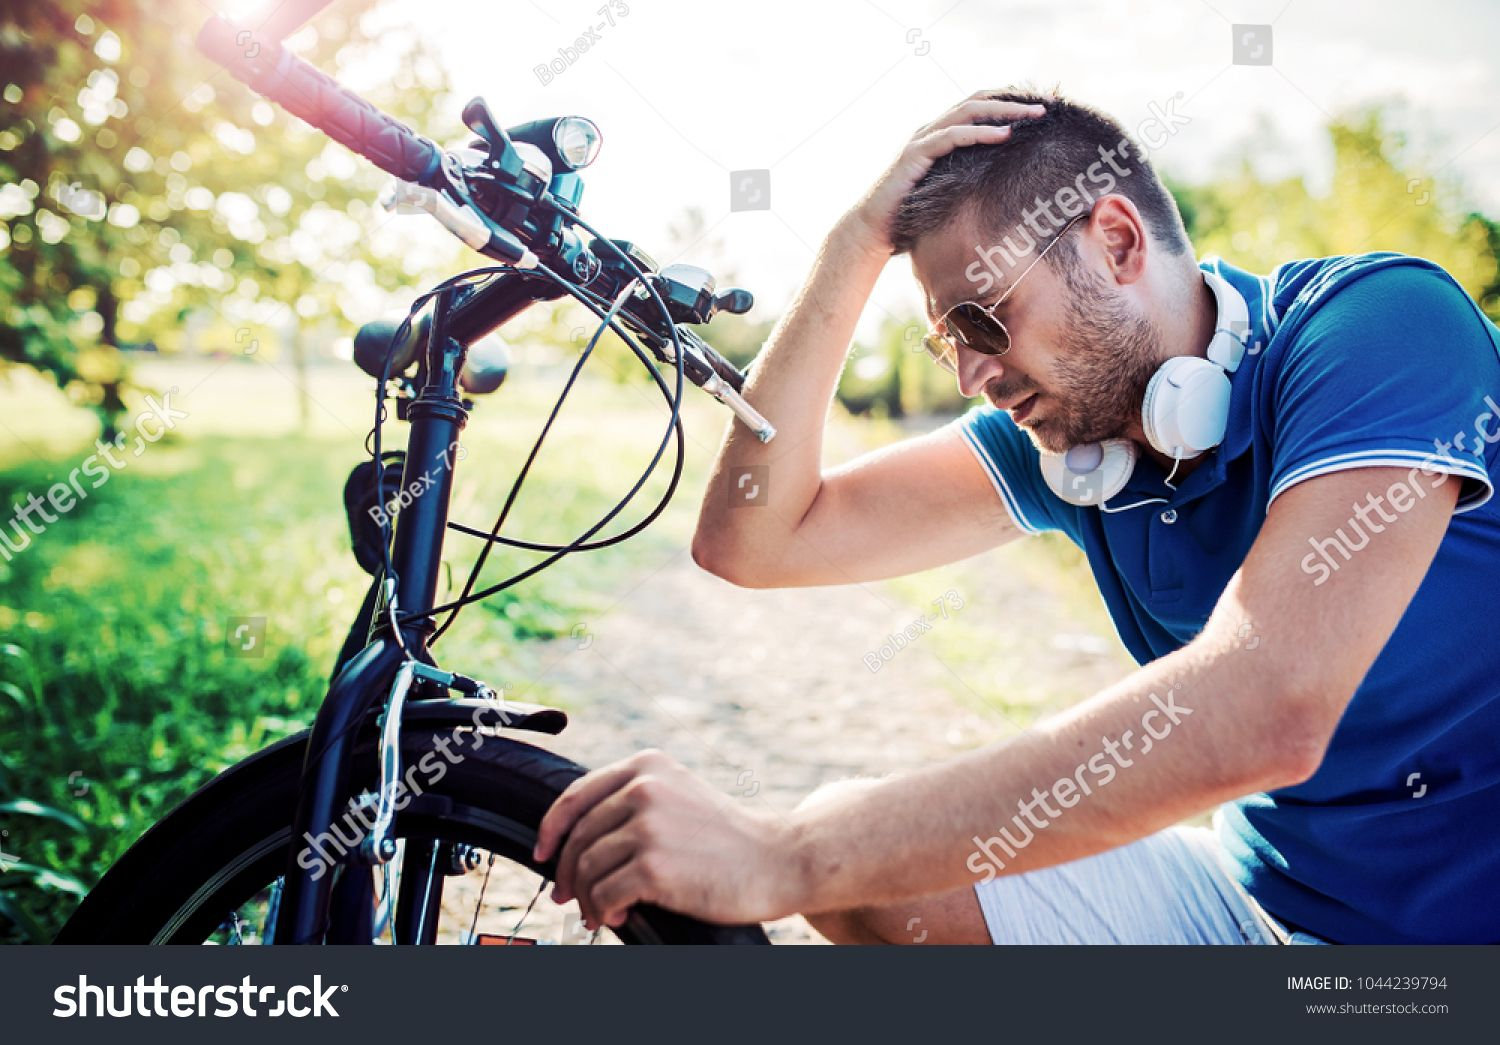 Man checking the tire during the bike ride in the park. Sport and recreation concept ,